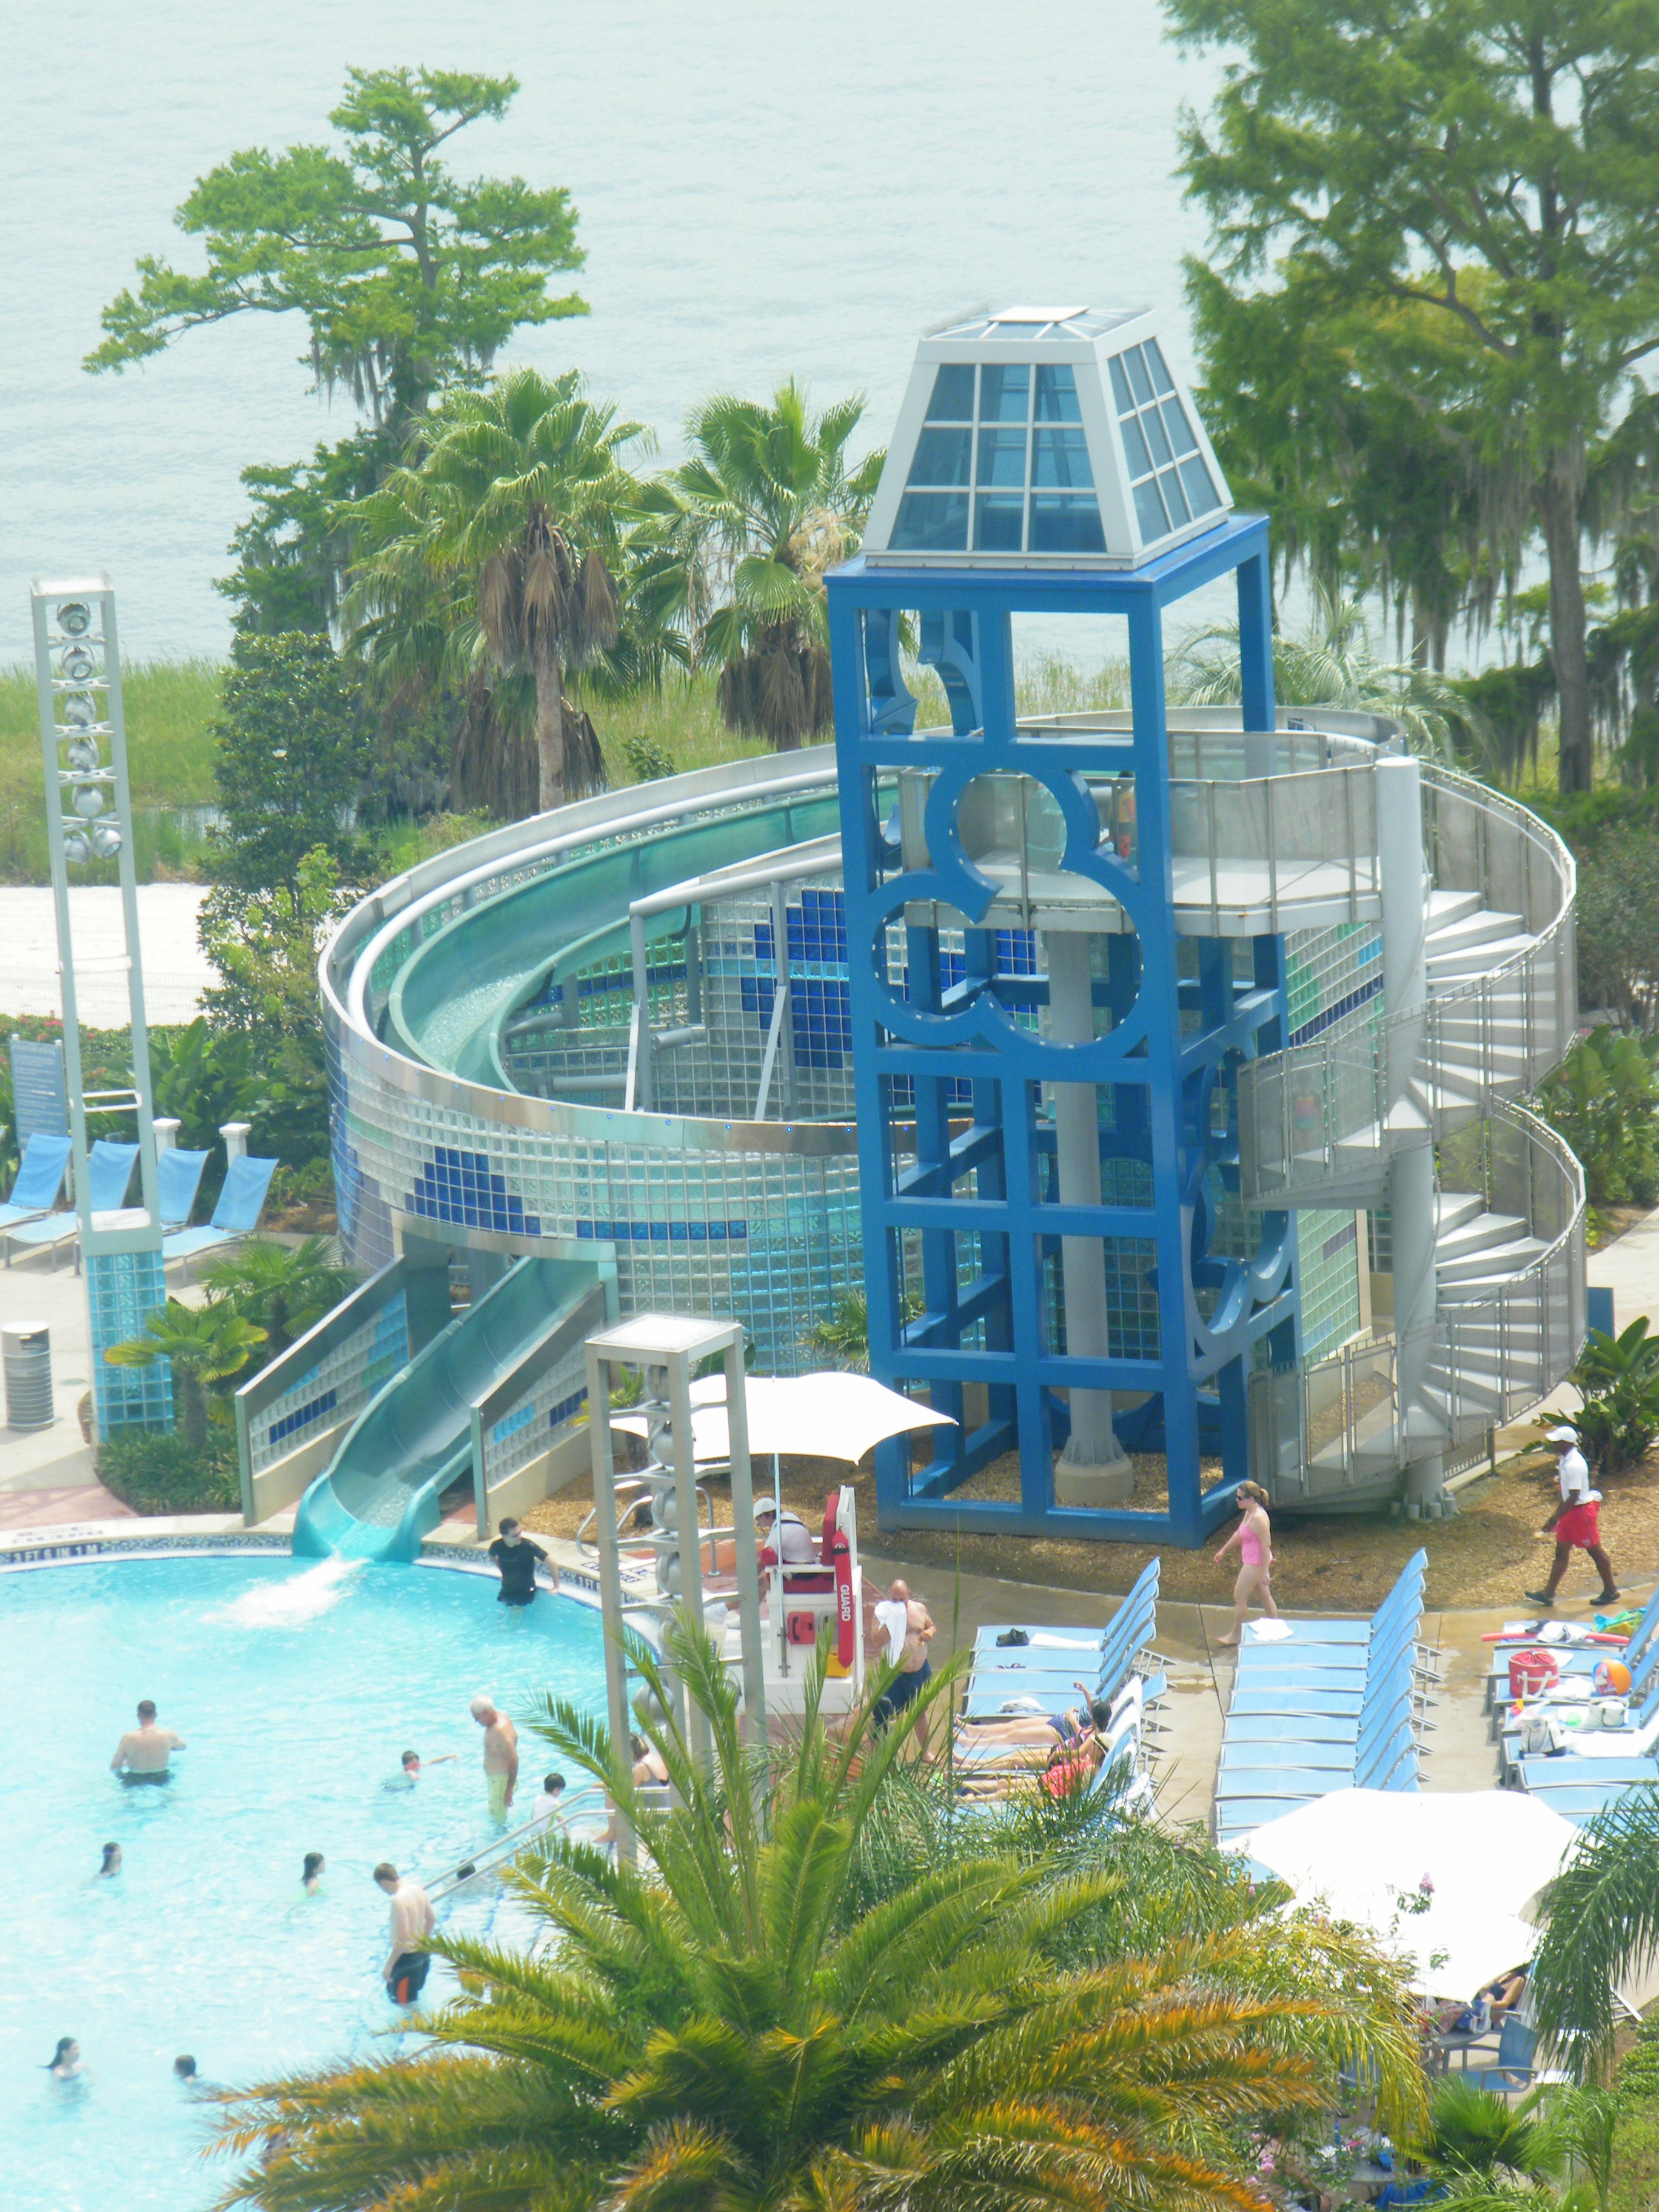 Wilderness Lodge  Standard and Woods View   Animal Kingdom Lodge    Wilderness Lodge Pool Slide